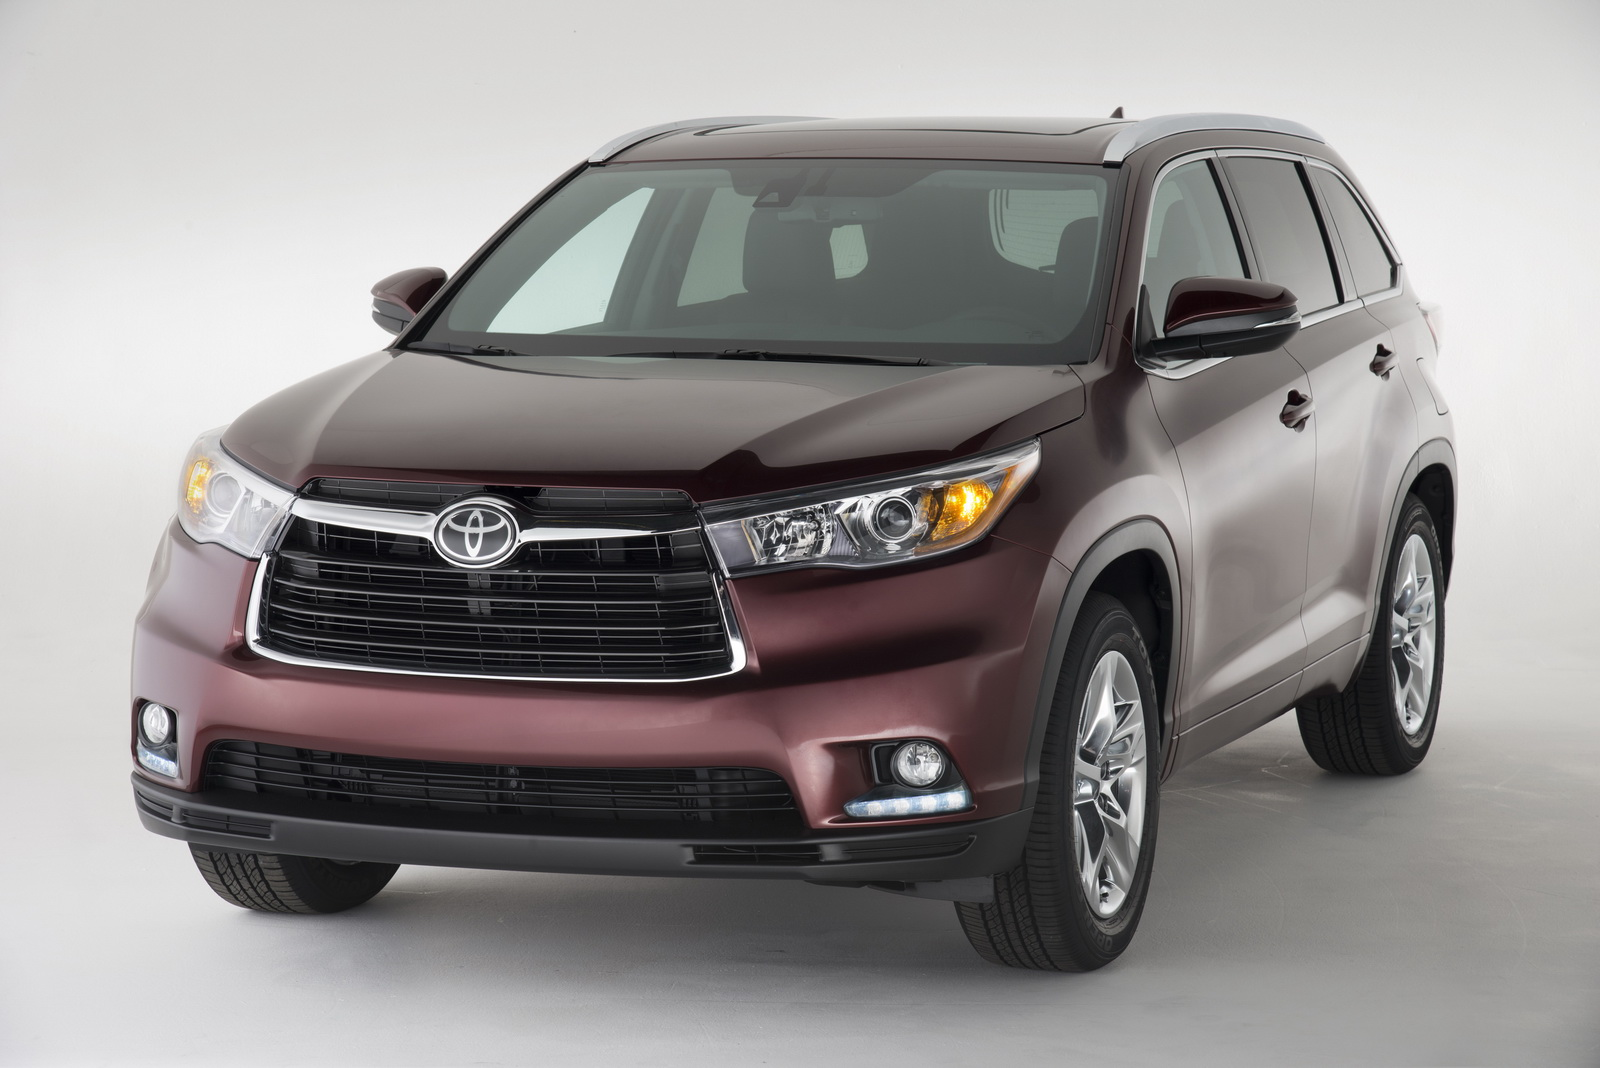 All new 2014 toyota highlander Toyota highlander 2014 exterior